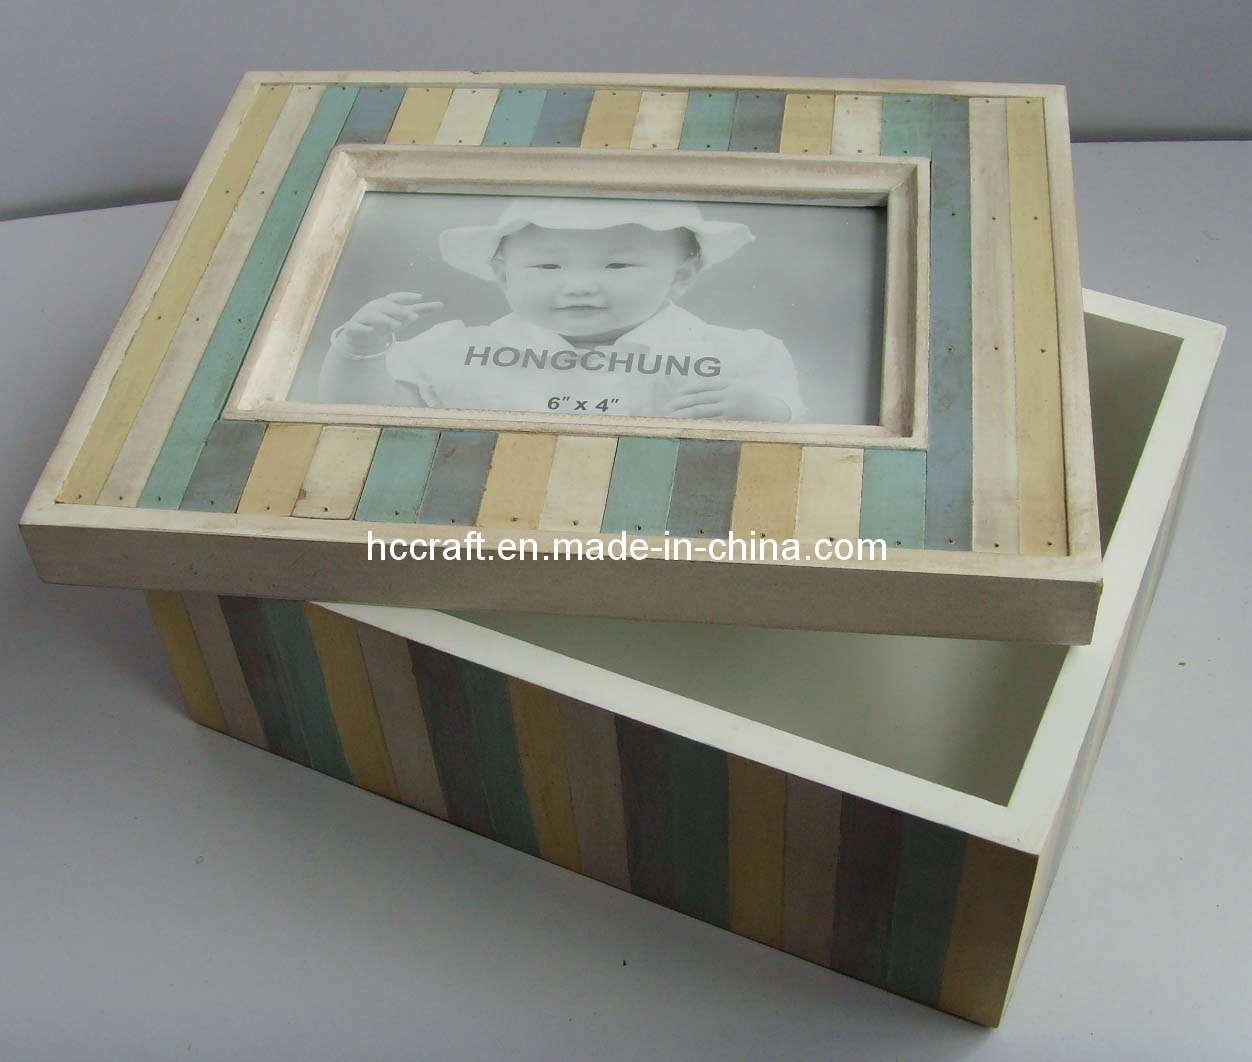 Wood Box Frame : China New Antique Wooden Box Frame with Opening (628019) Photos ...